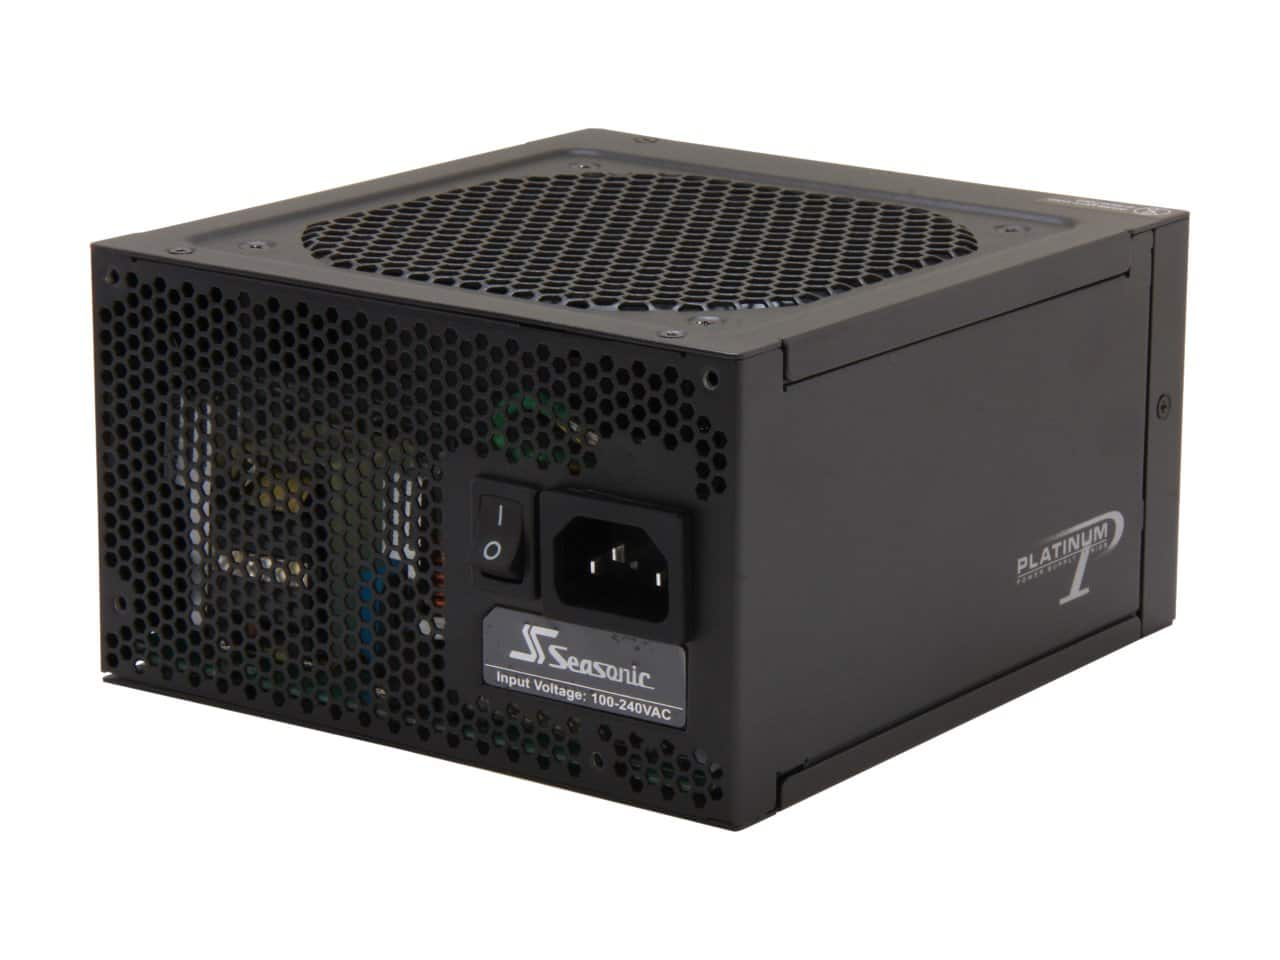 Seasonic 660W 80+ Platinum Power Supply  $80 after $15 Rebate + Free S/H